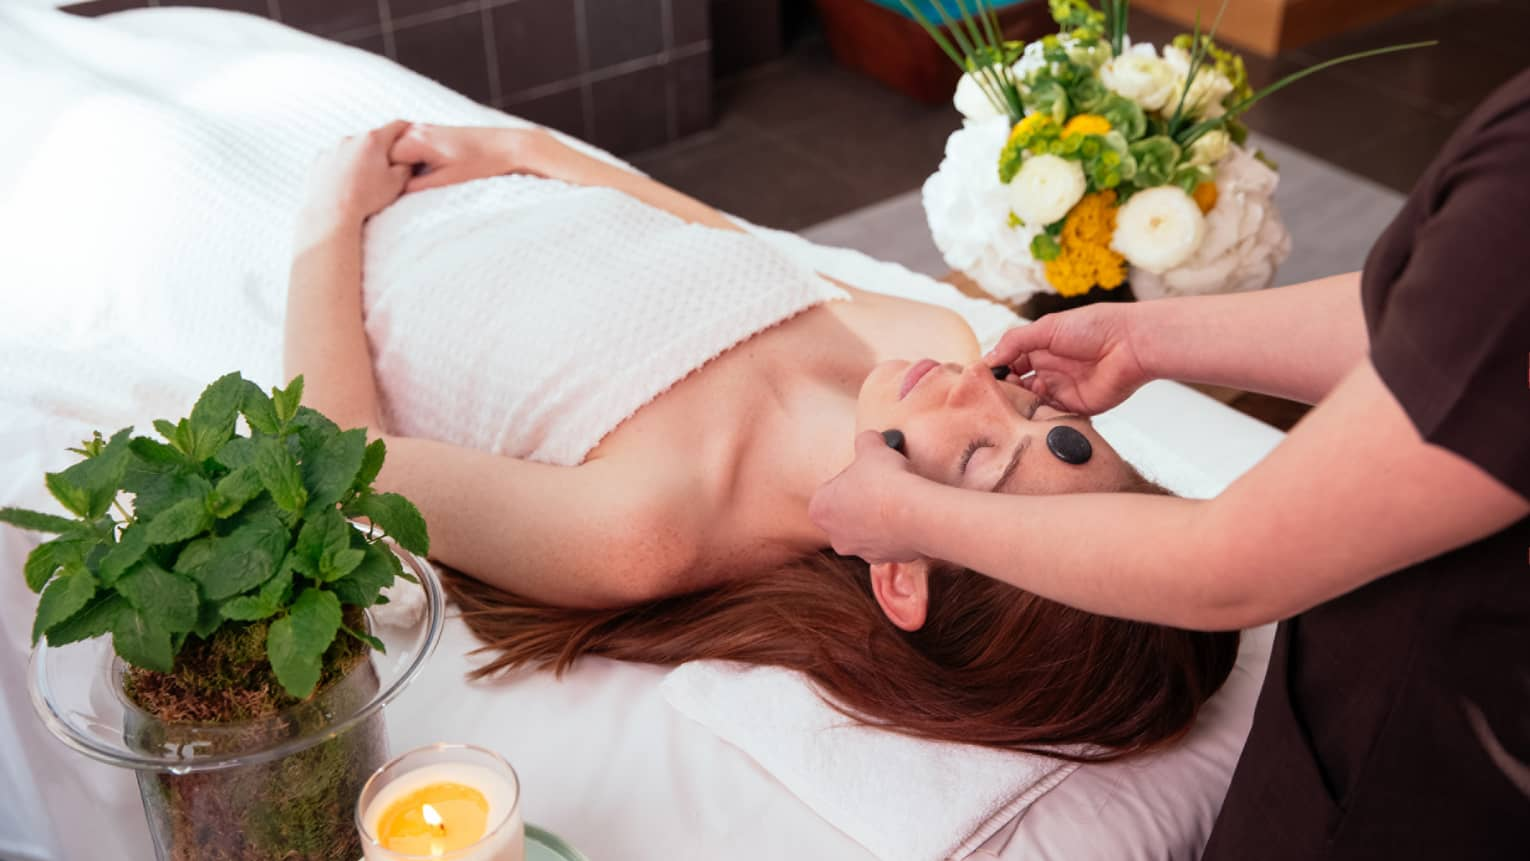 Spa staff places black stones on woman's forehead, cheeks as she lies under white sheet on massage bed